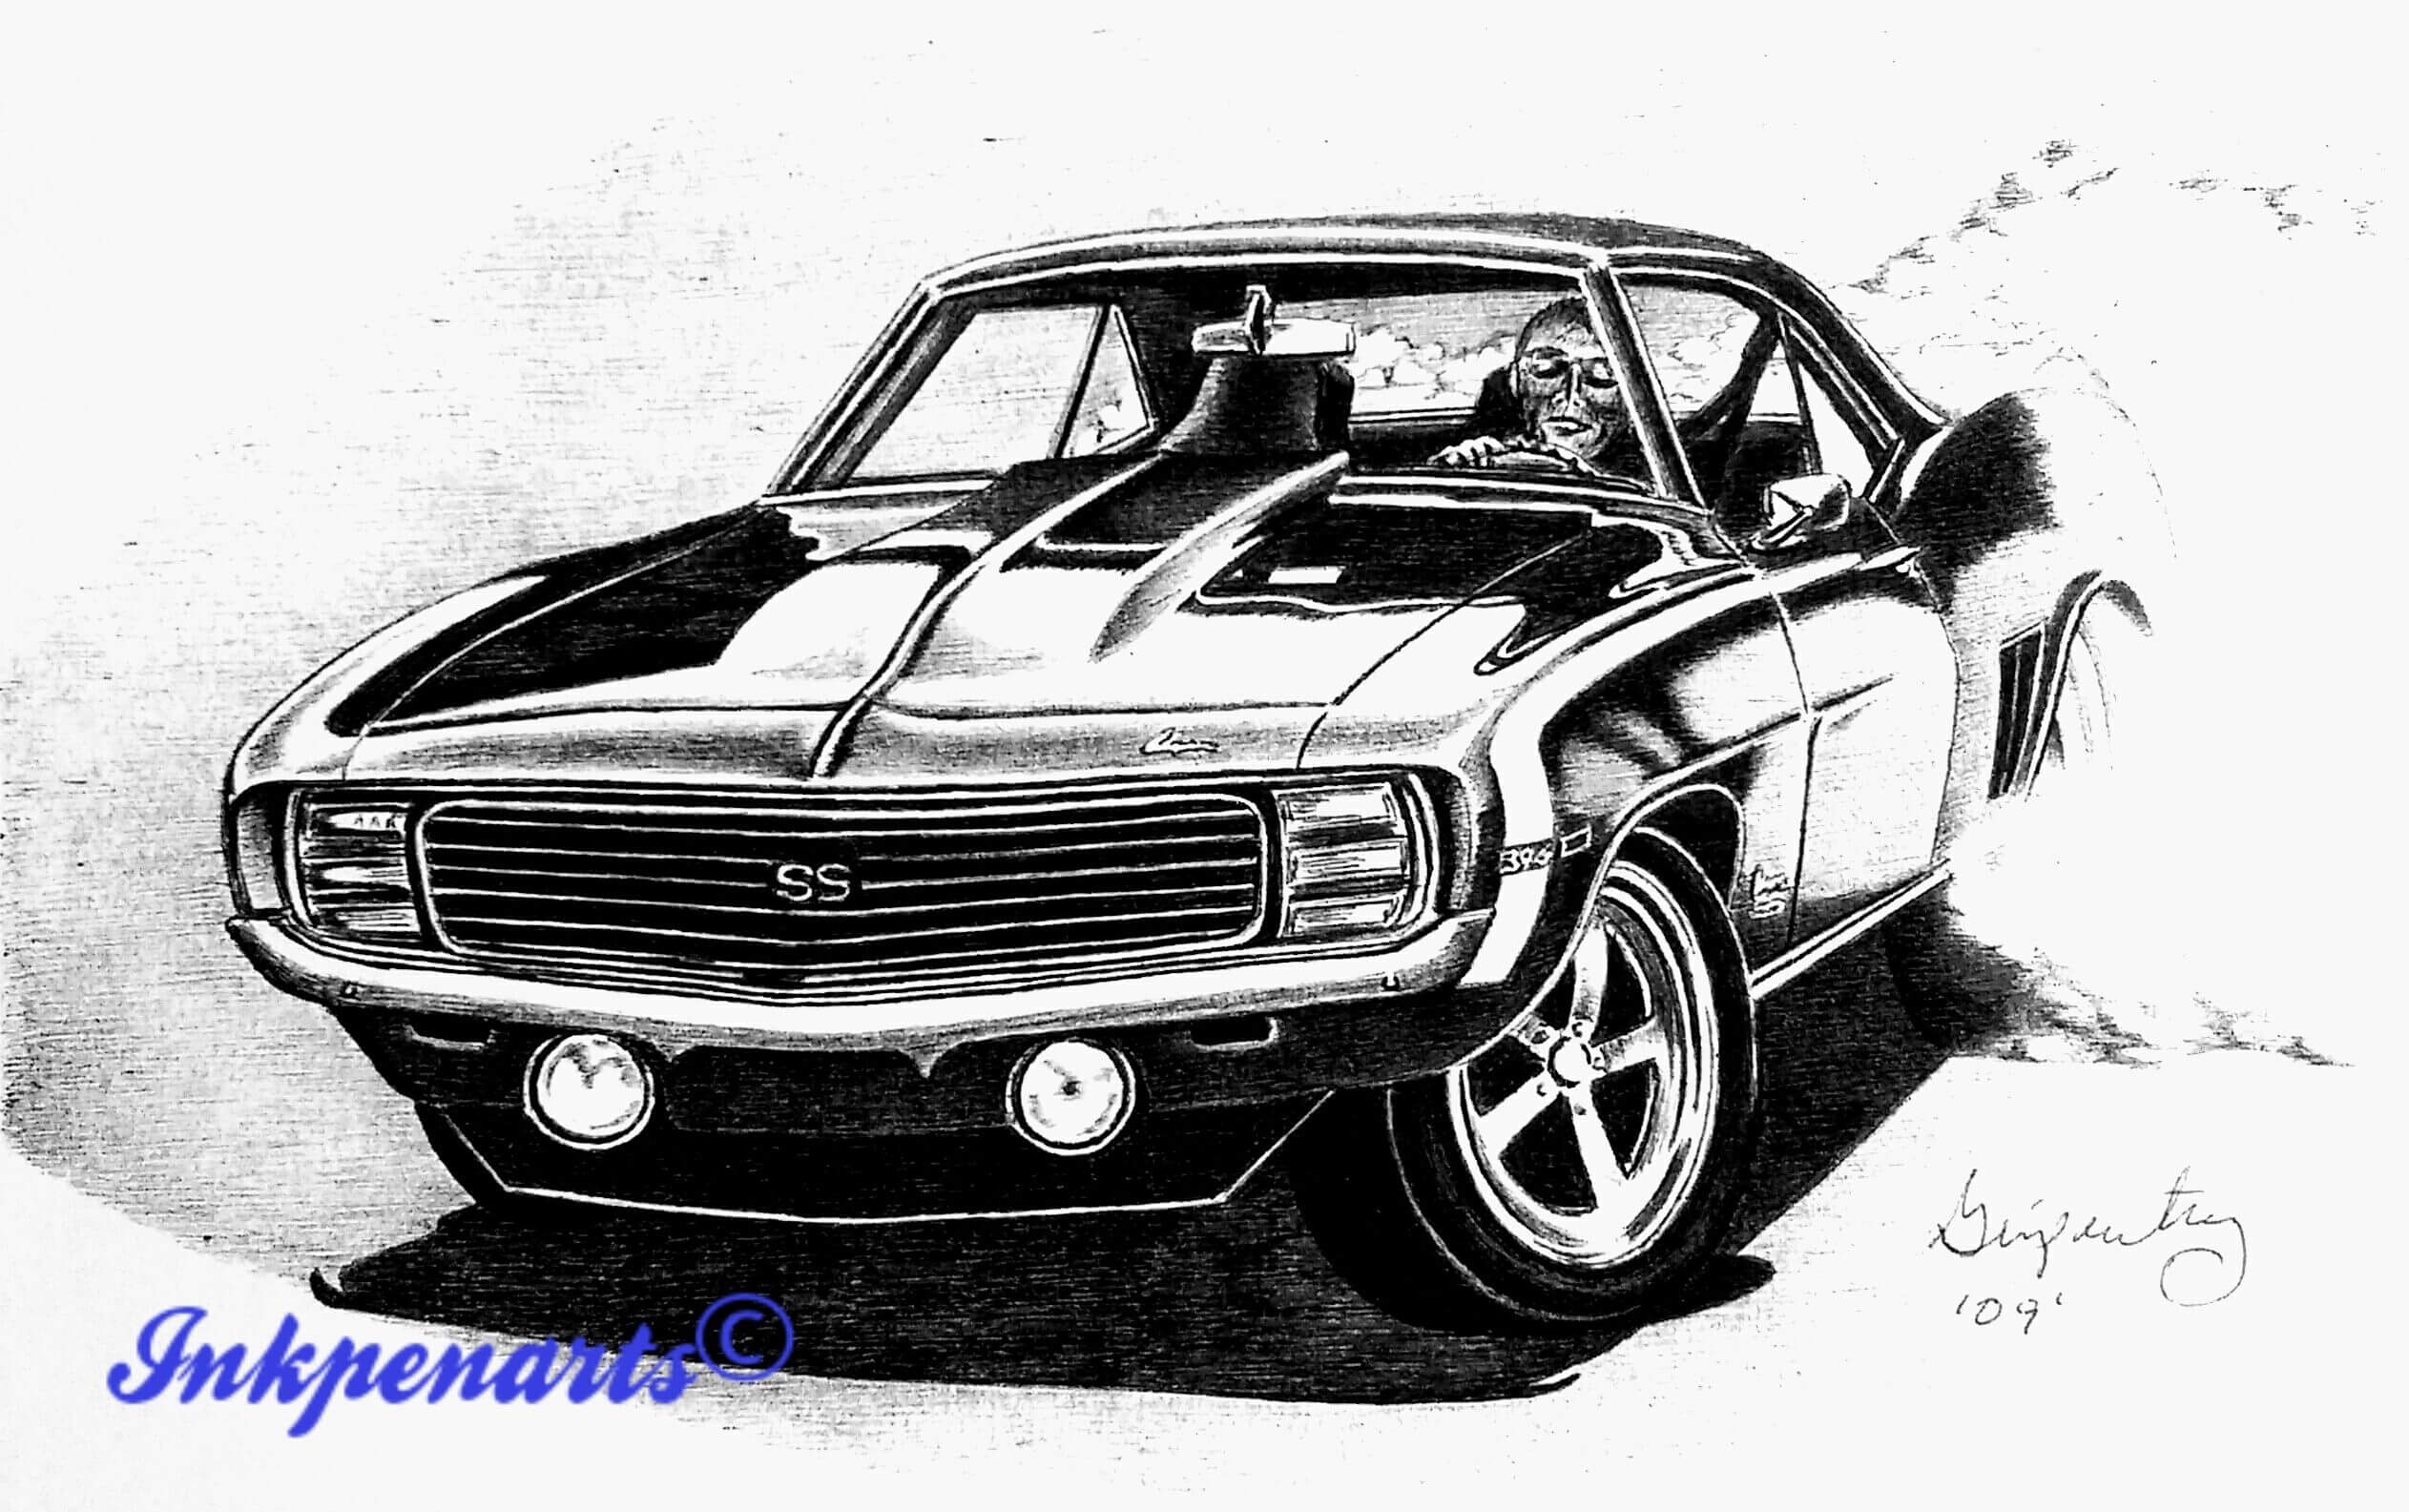 Ryan Mcclary together with 1967 Camaro Dash Wiring Harness Diagram also Steve Lafler Illustration Color Sep Files as well 1977 Pontiac Trans Am Bandit Rudy Edwards likewise How To Draw A 69 Camaro. on chevy camaro drawings